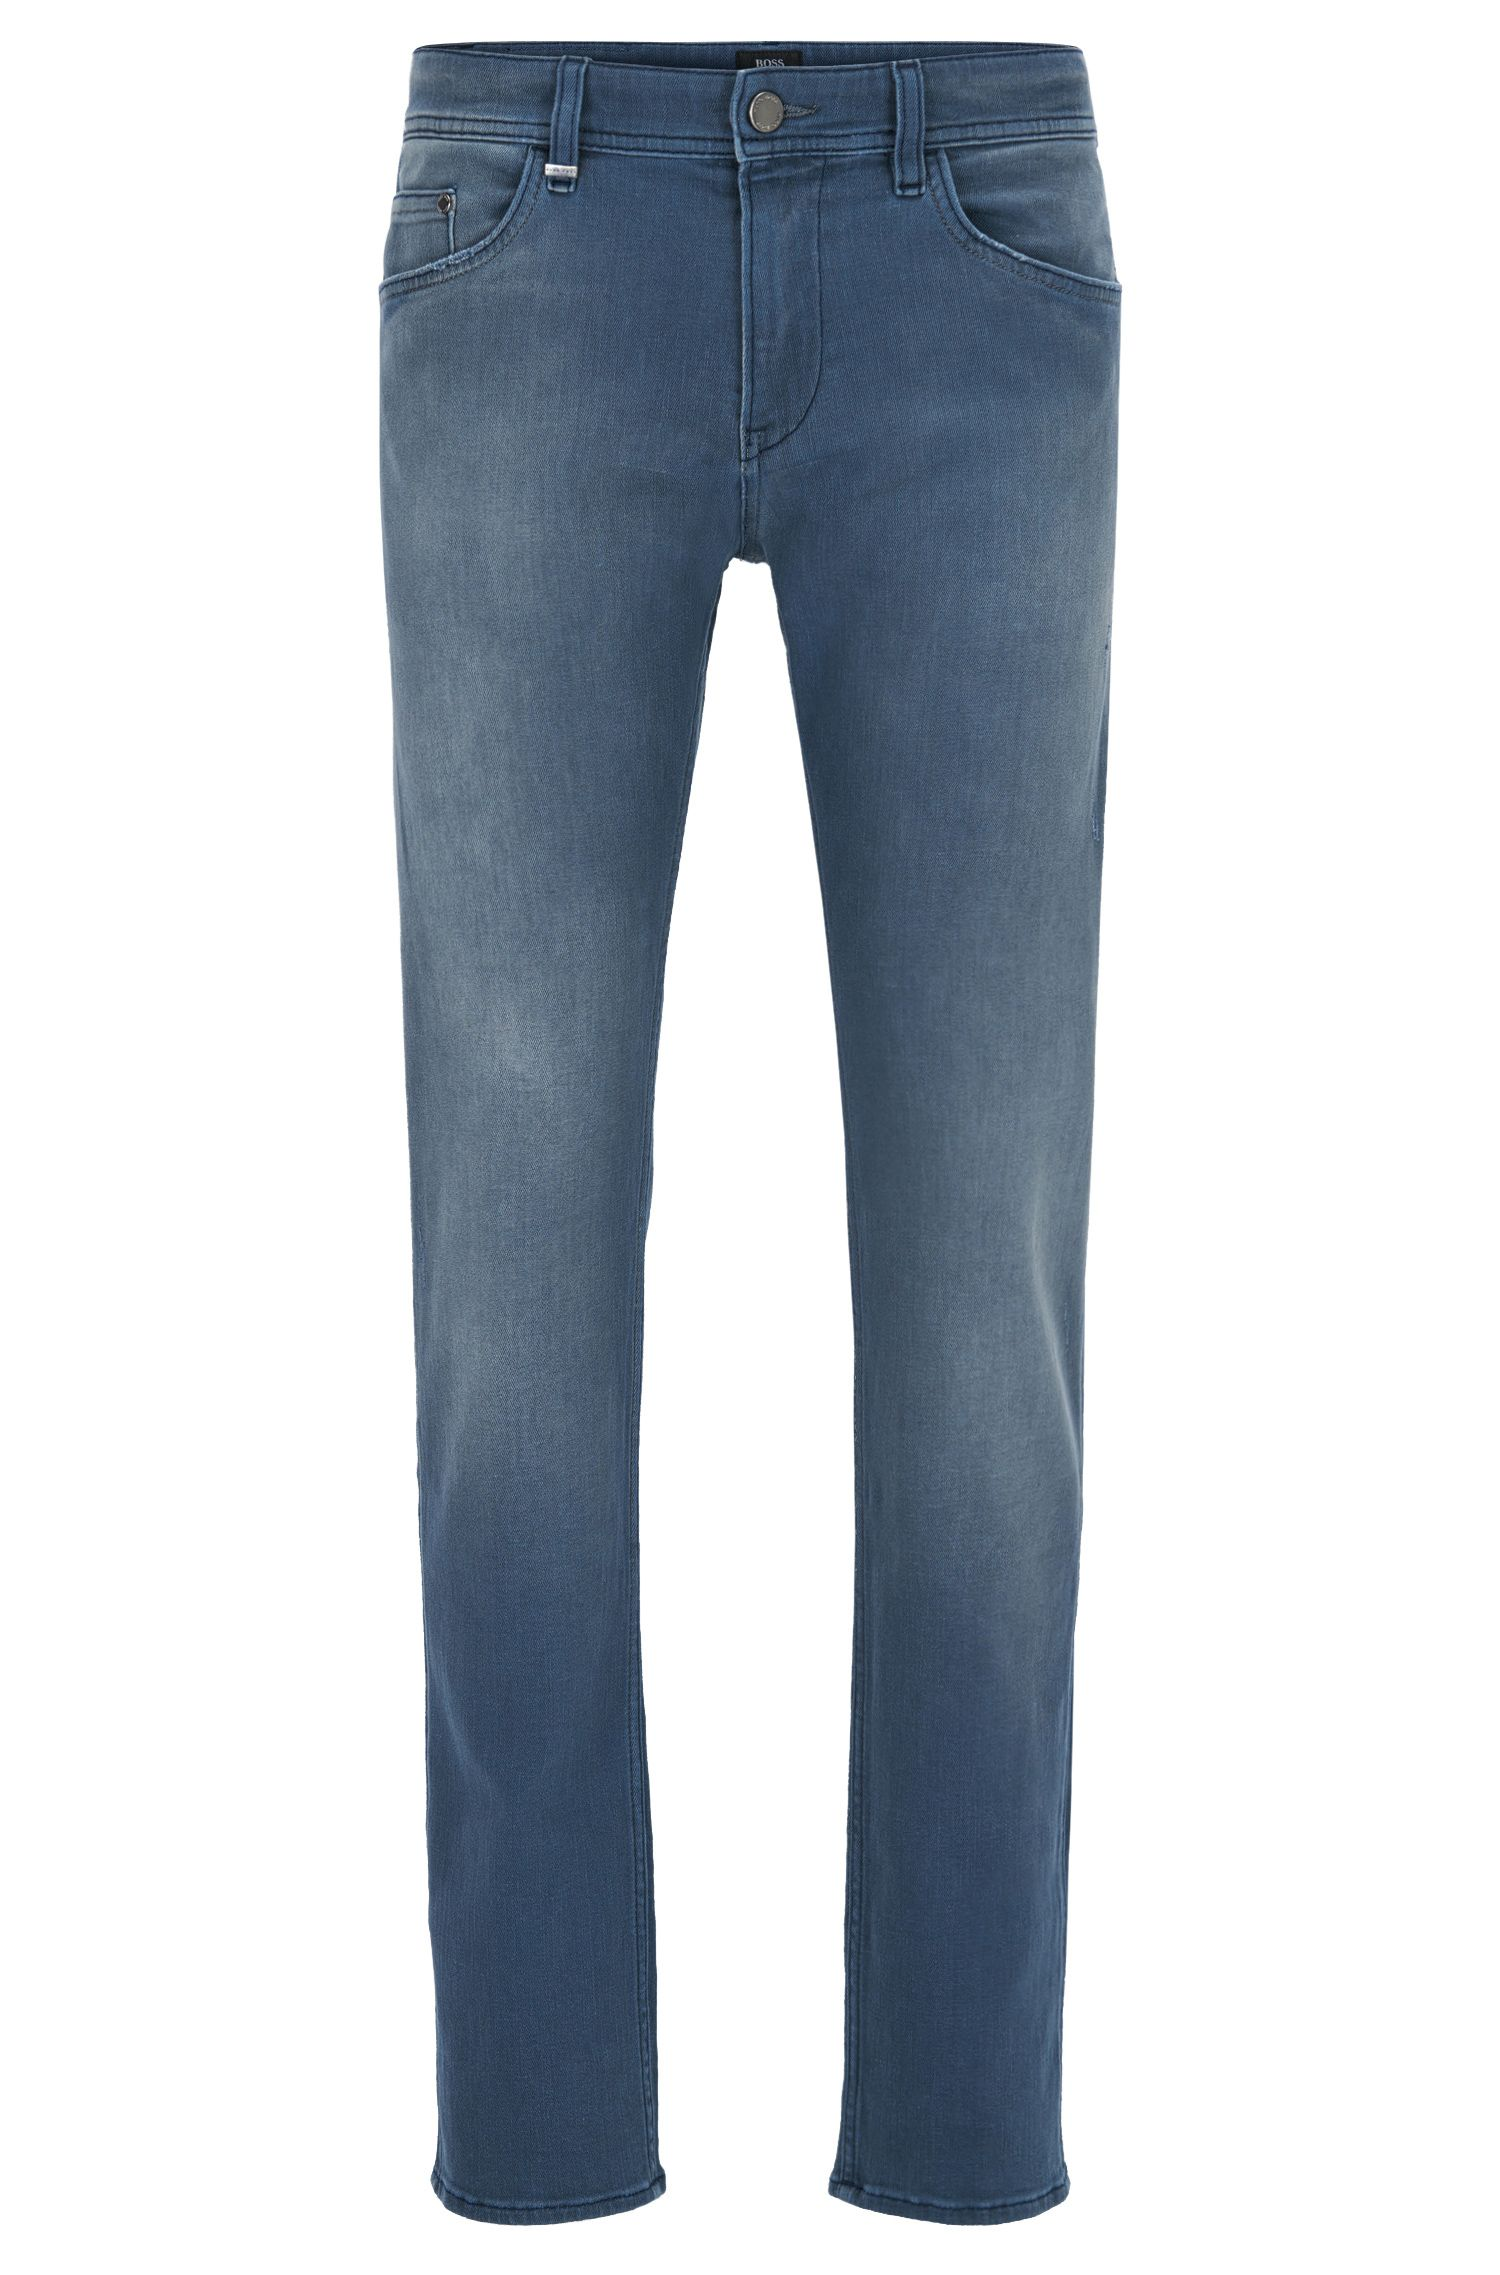 Slim-Fit Jeans aus Stretch Denim mit mattem Finish